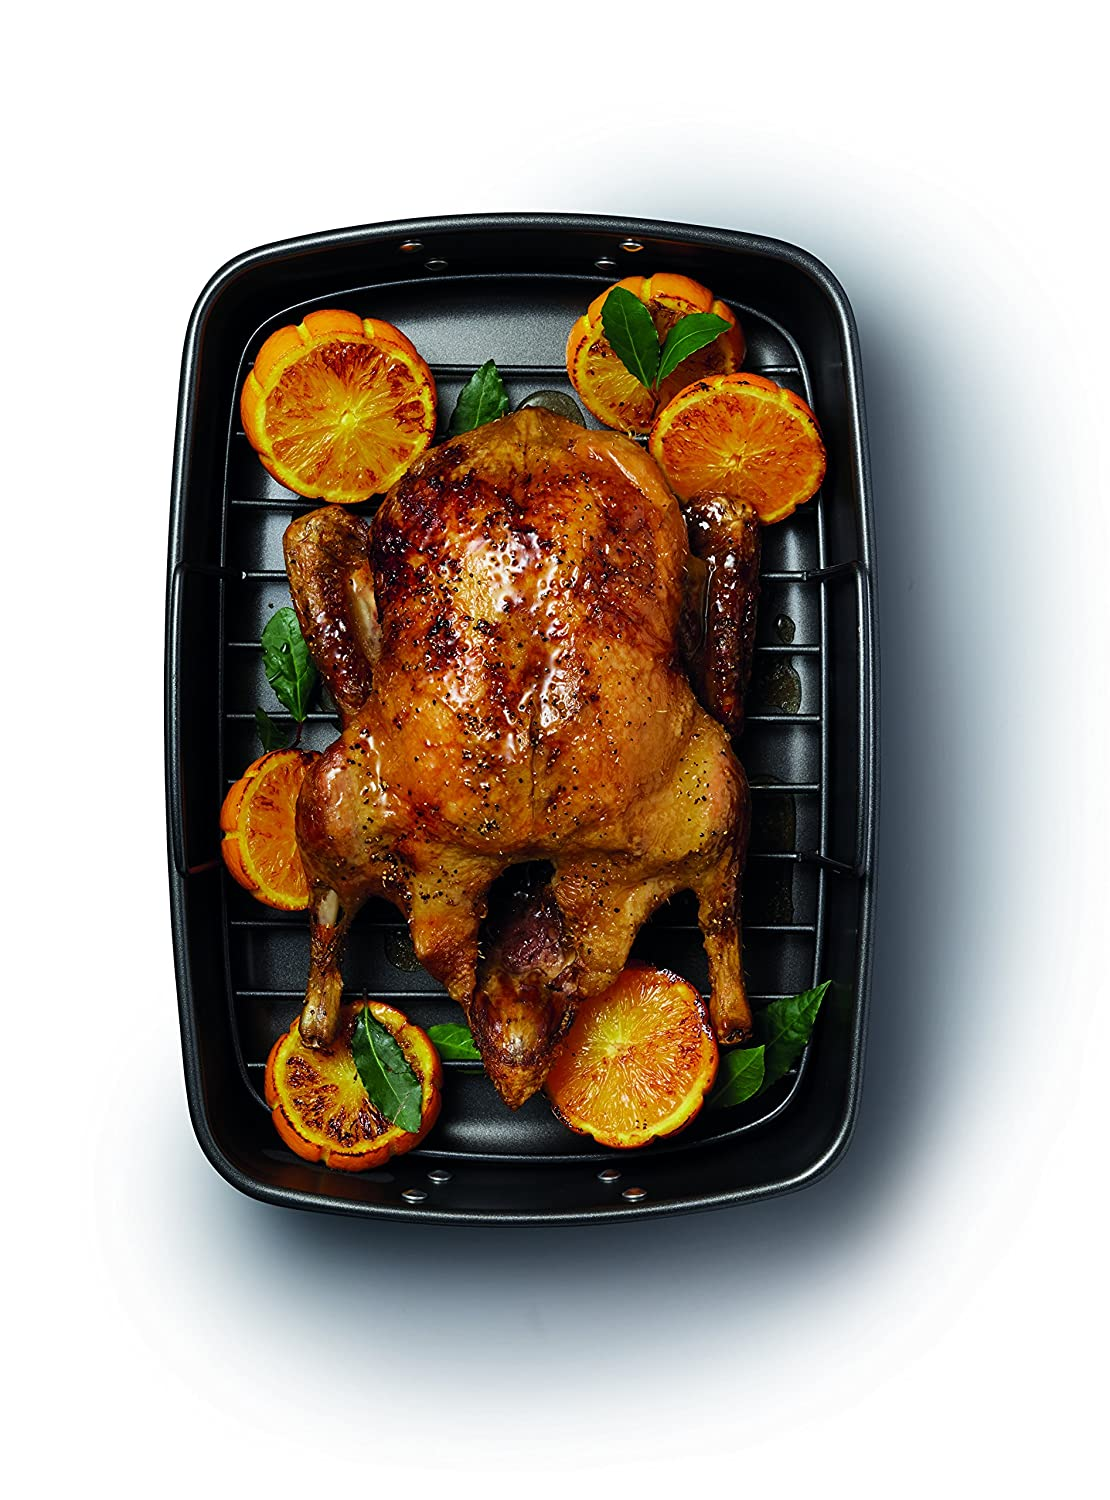 Commercial Grade Large Roasting Tin Tray with Non-Stick Steel Rack 40 x 28 cm